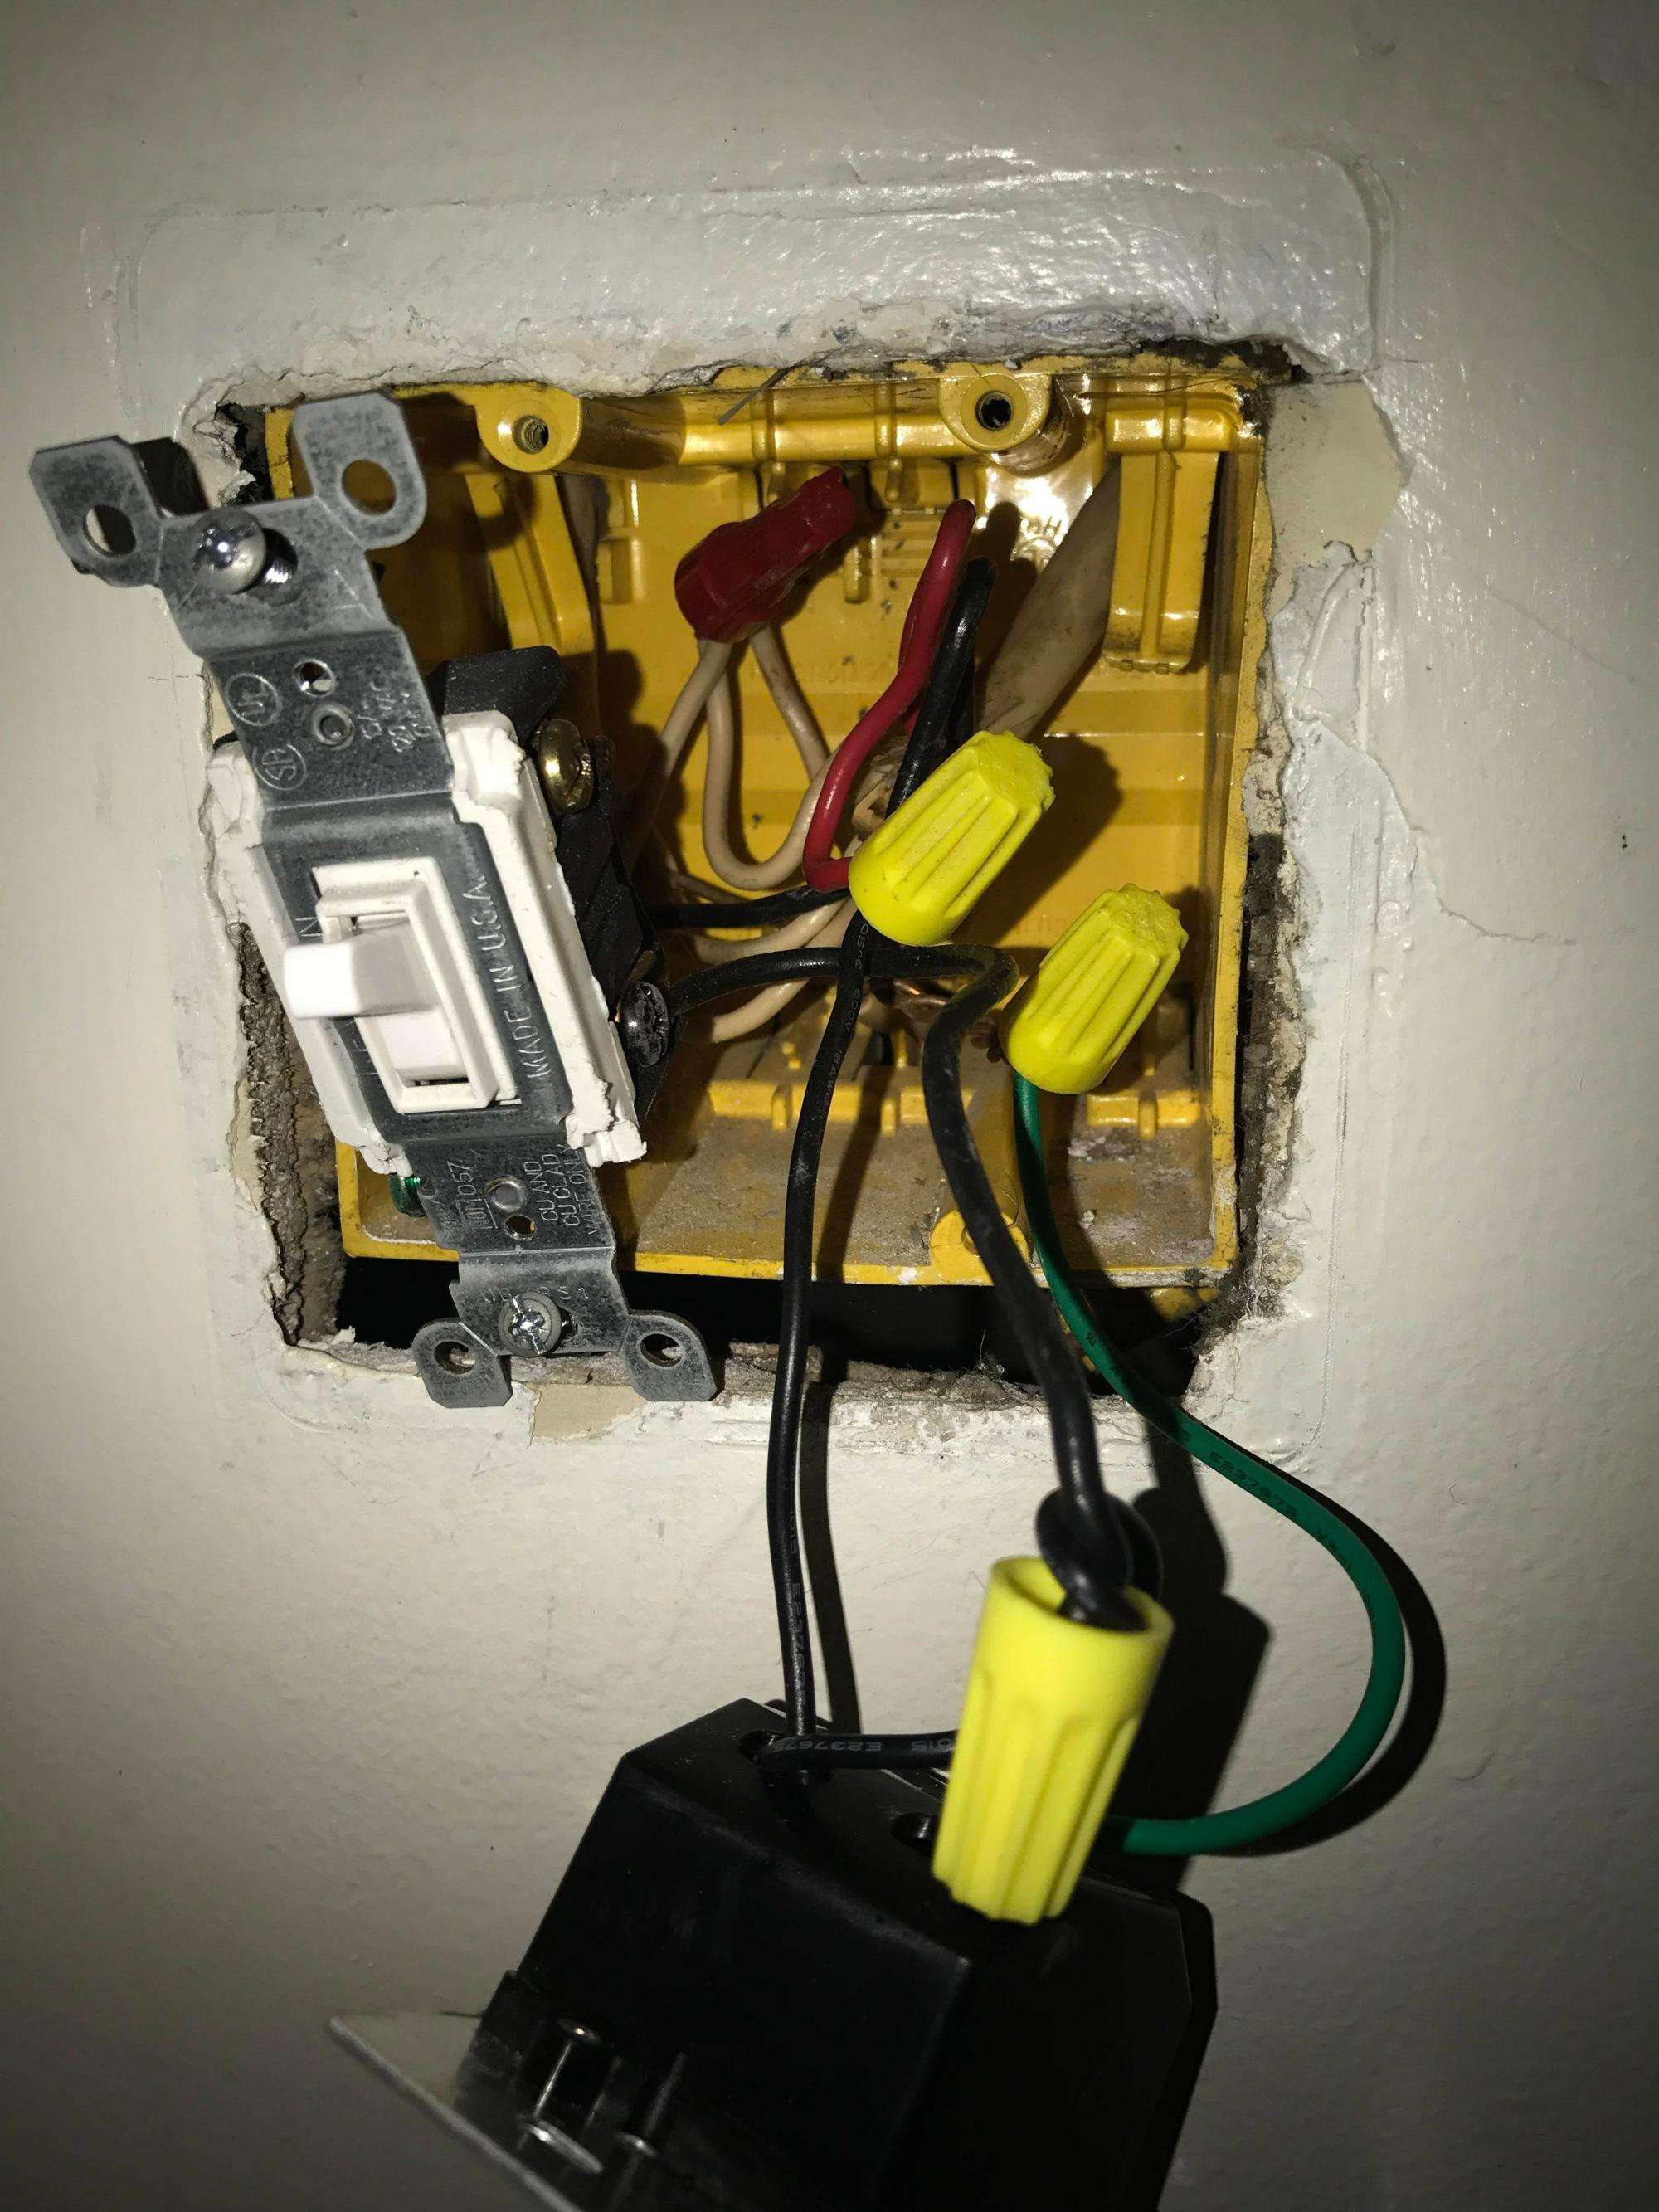 hight resolution of electrical replacing a dimmer switch with regular home electrical how can i wire this dimmer switch home improvement